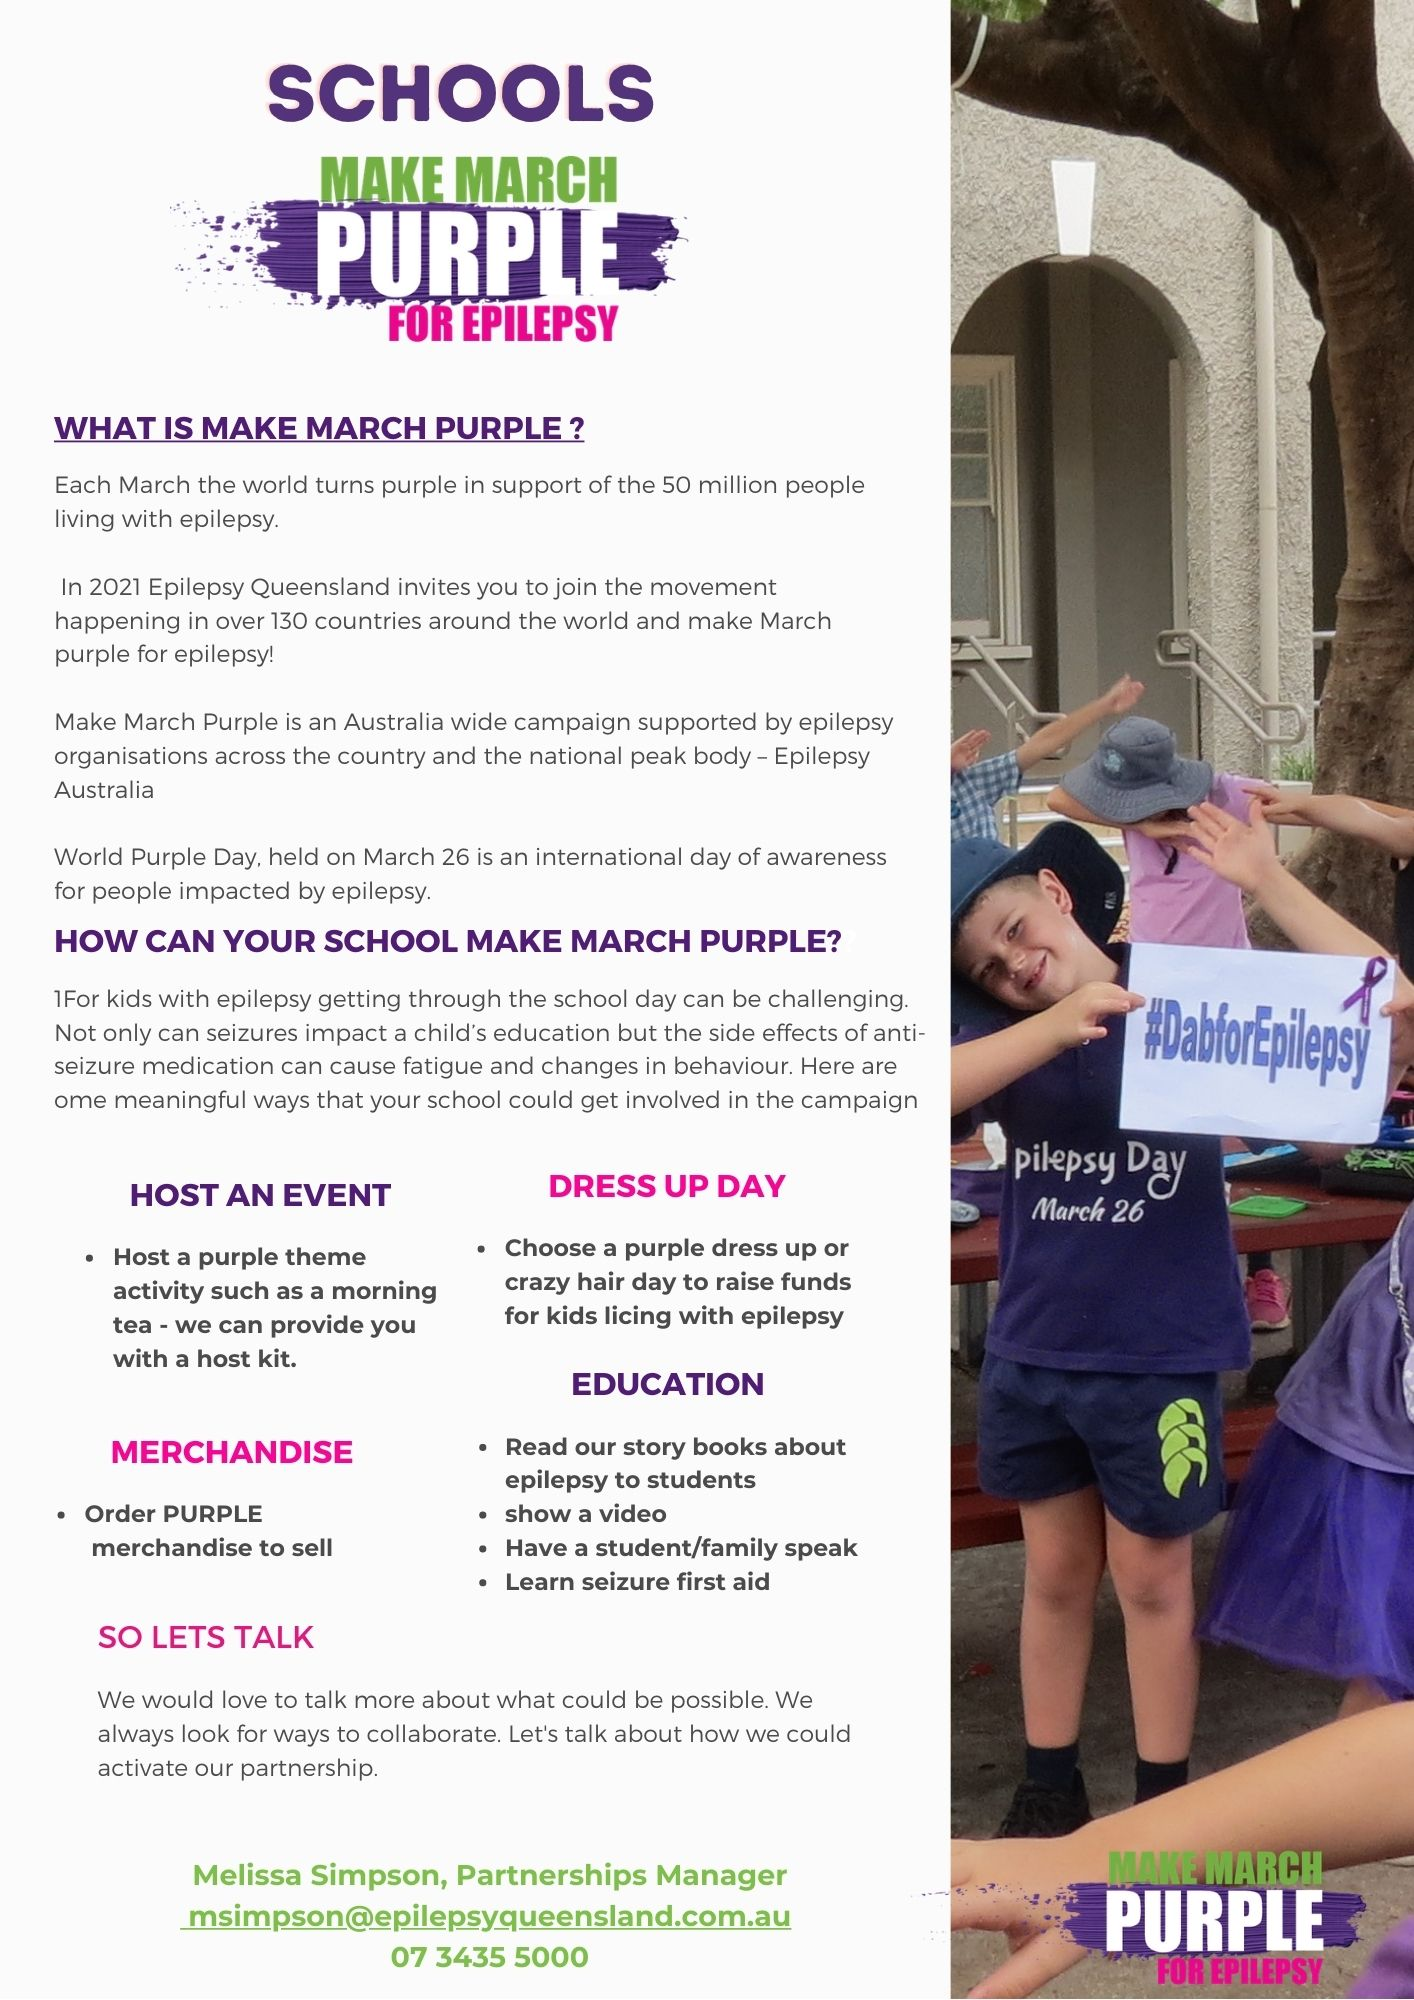 What is Make March Purple for schools